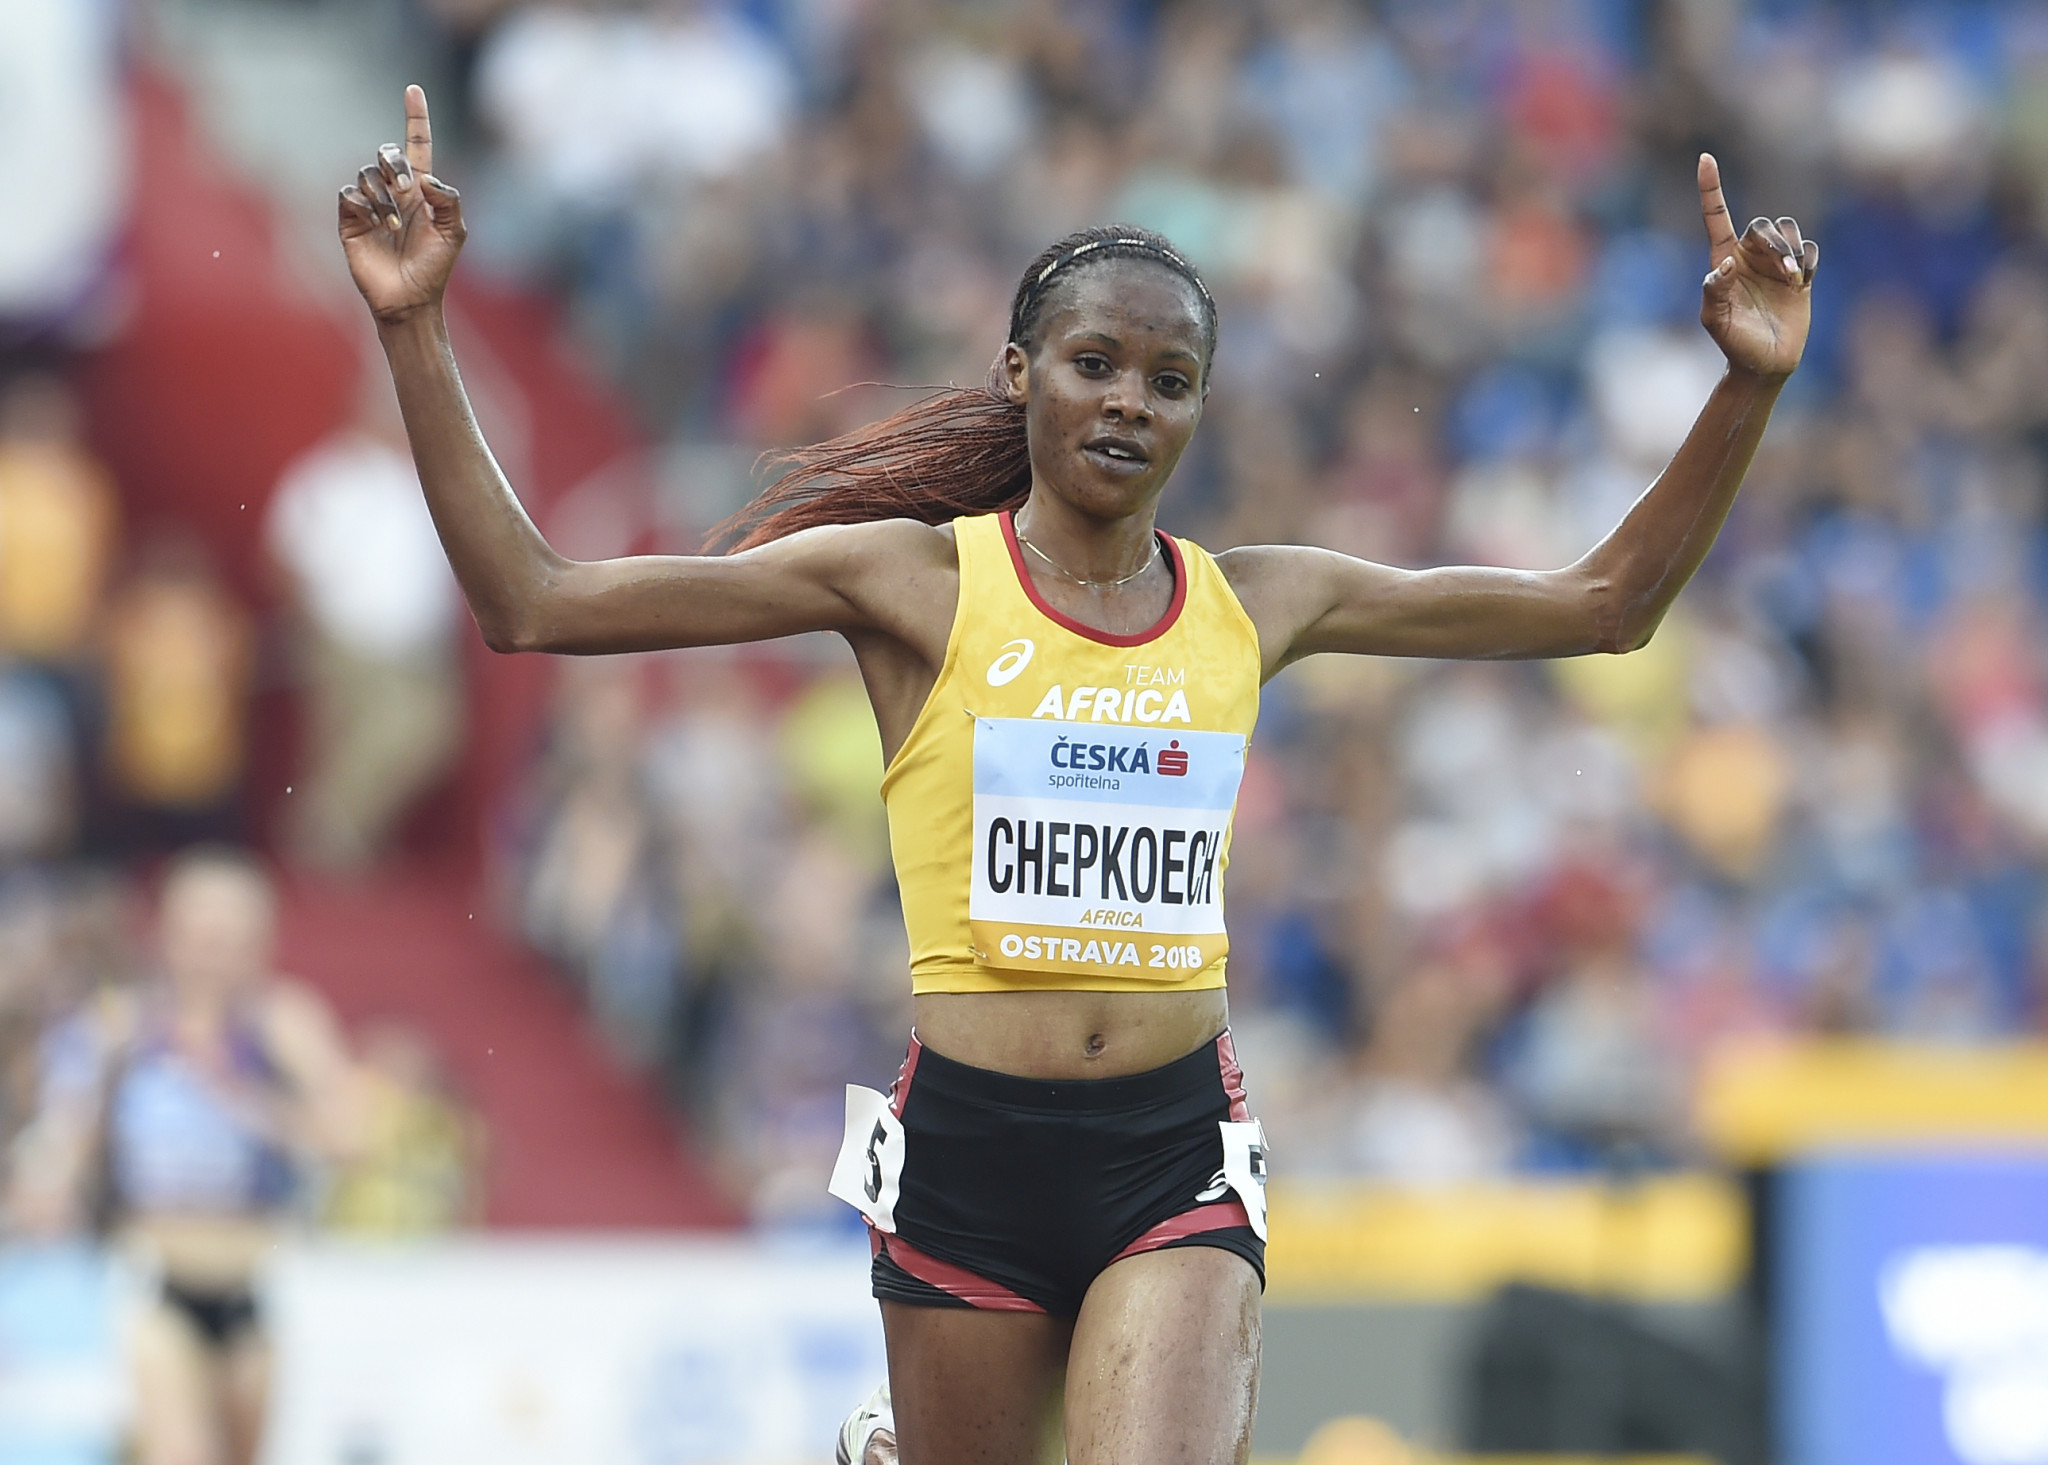 Kenya's Beatrice Chepkoech has been announced as a finalist for the Female World Athlete of the Year award by the IAAF for a season which included setting a world record in the 3,000m steeplechase ©Getty Images